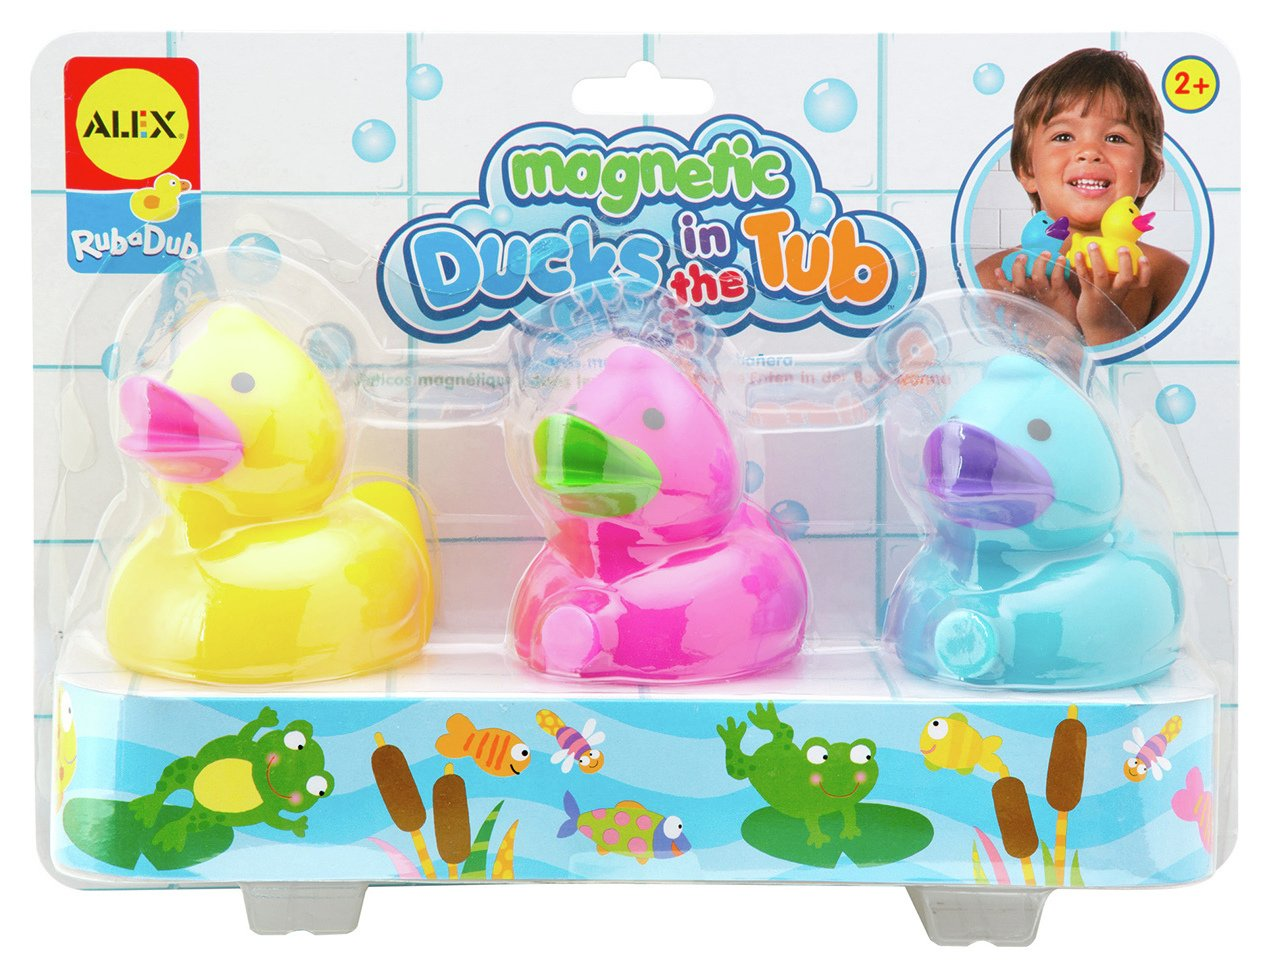 Image of Alex Toys Magnetic Ducks in the Tub.